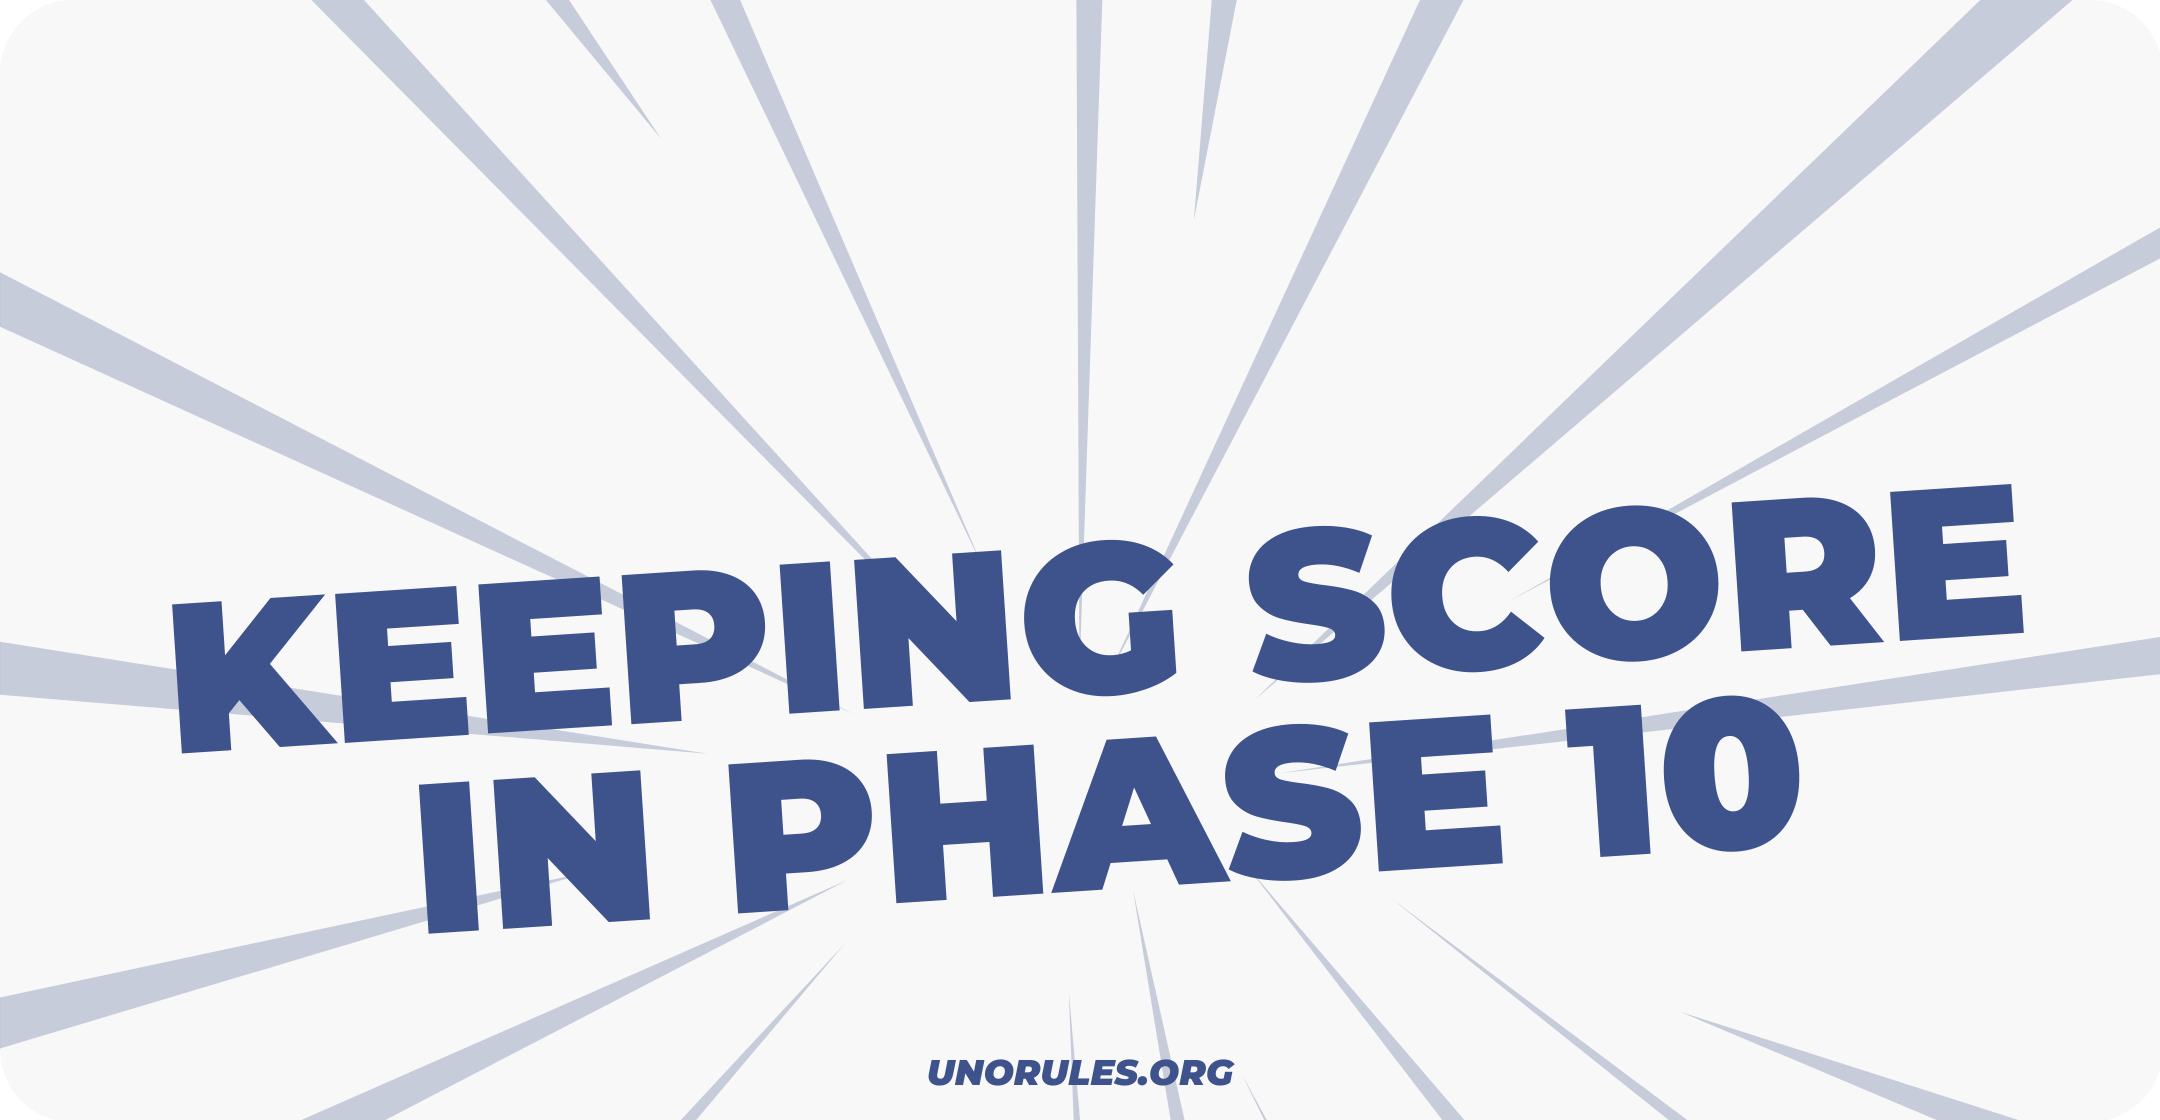 Different ways to keep score in Phase 10